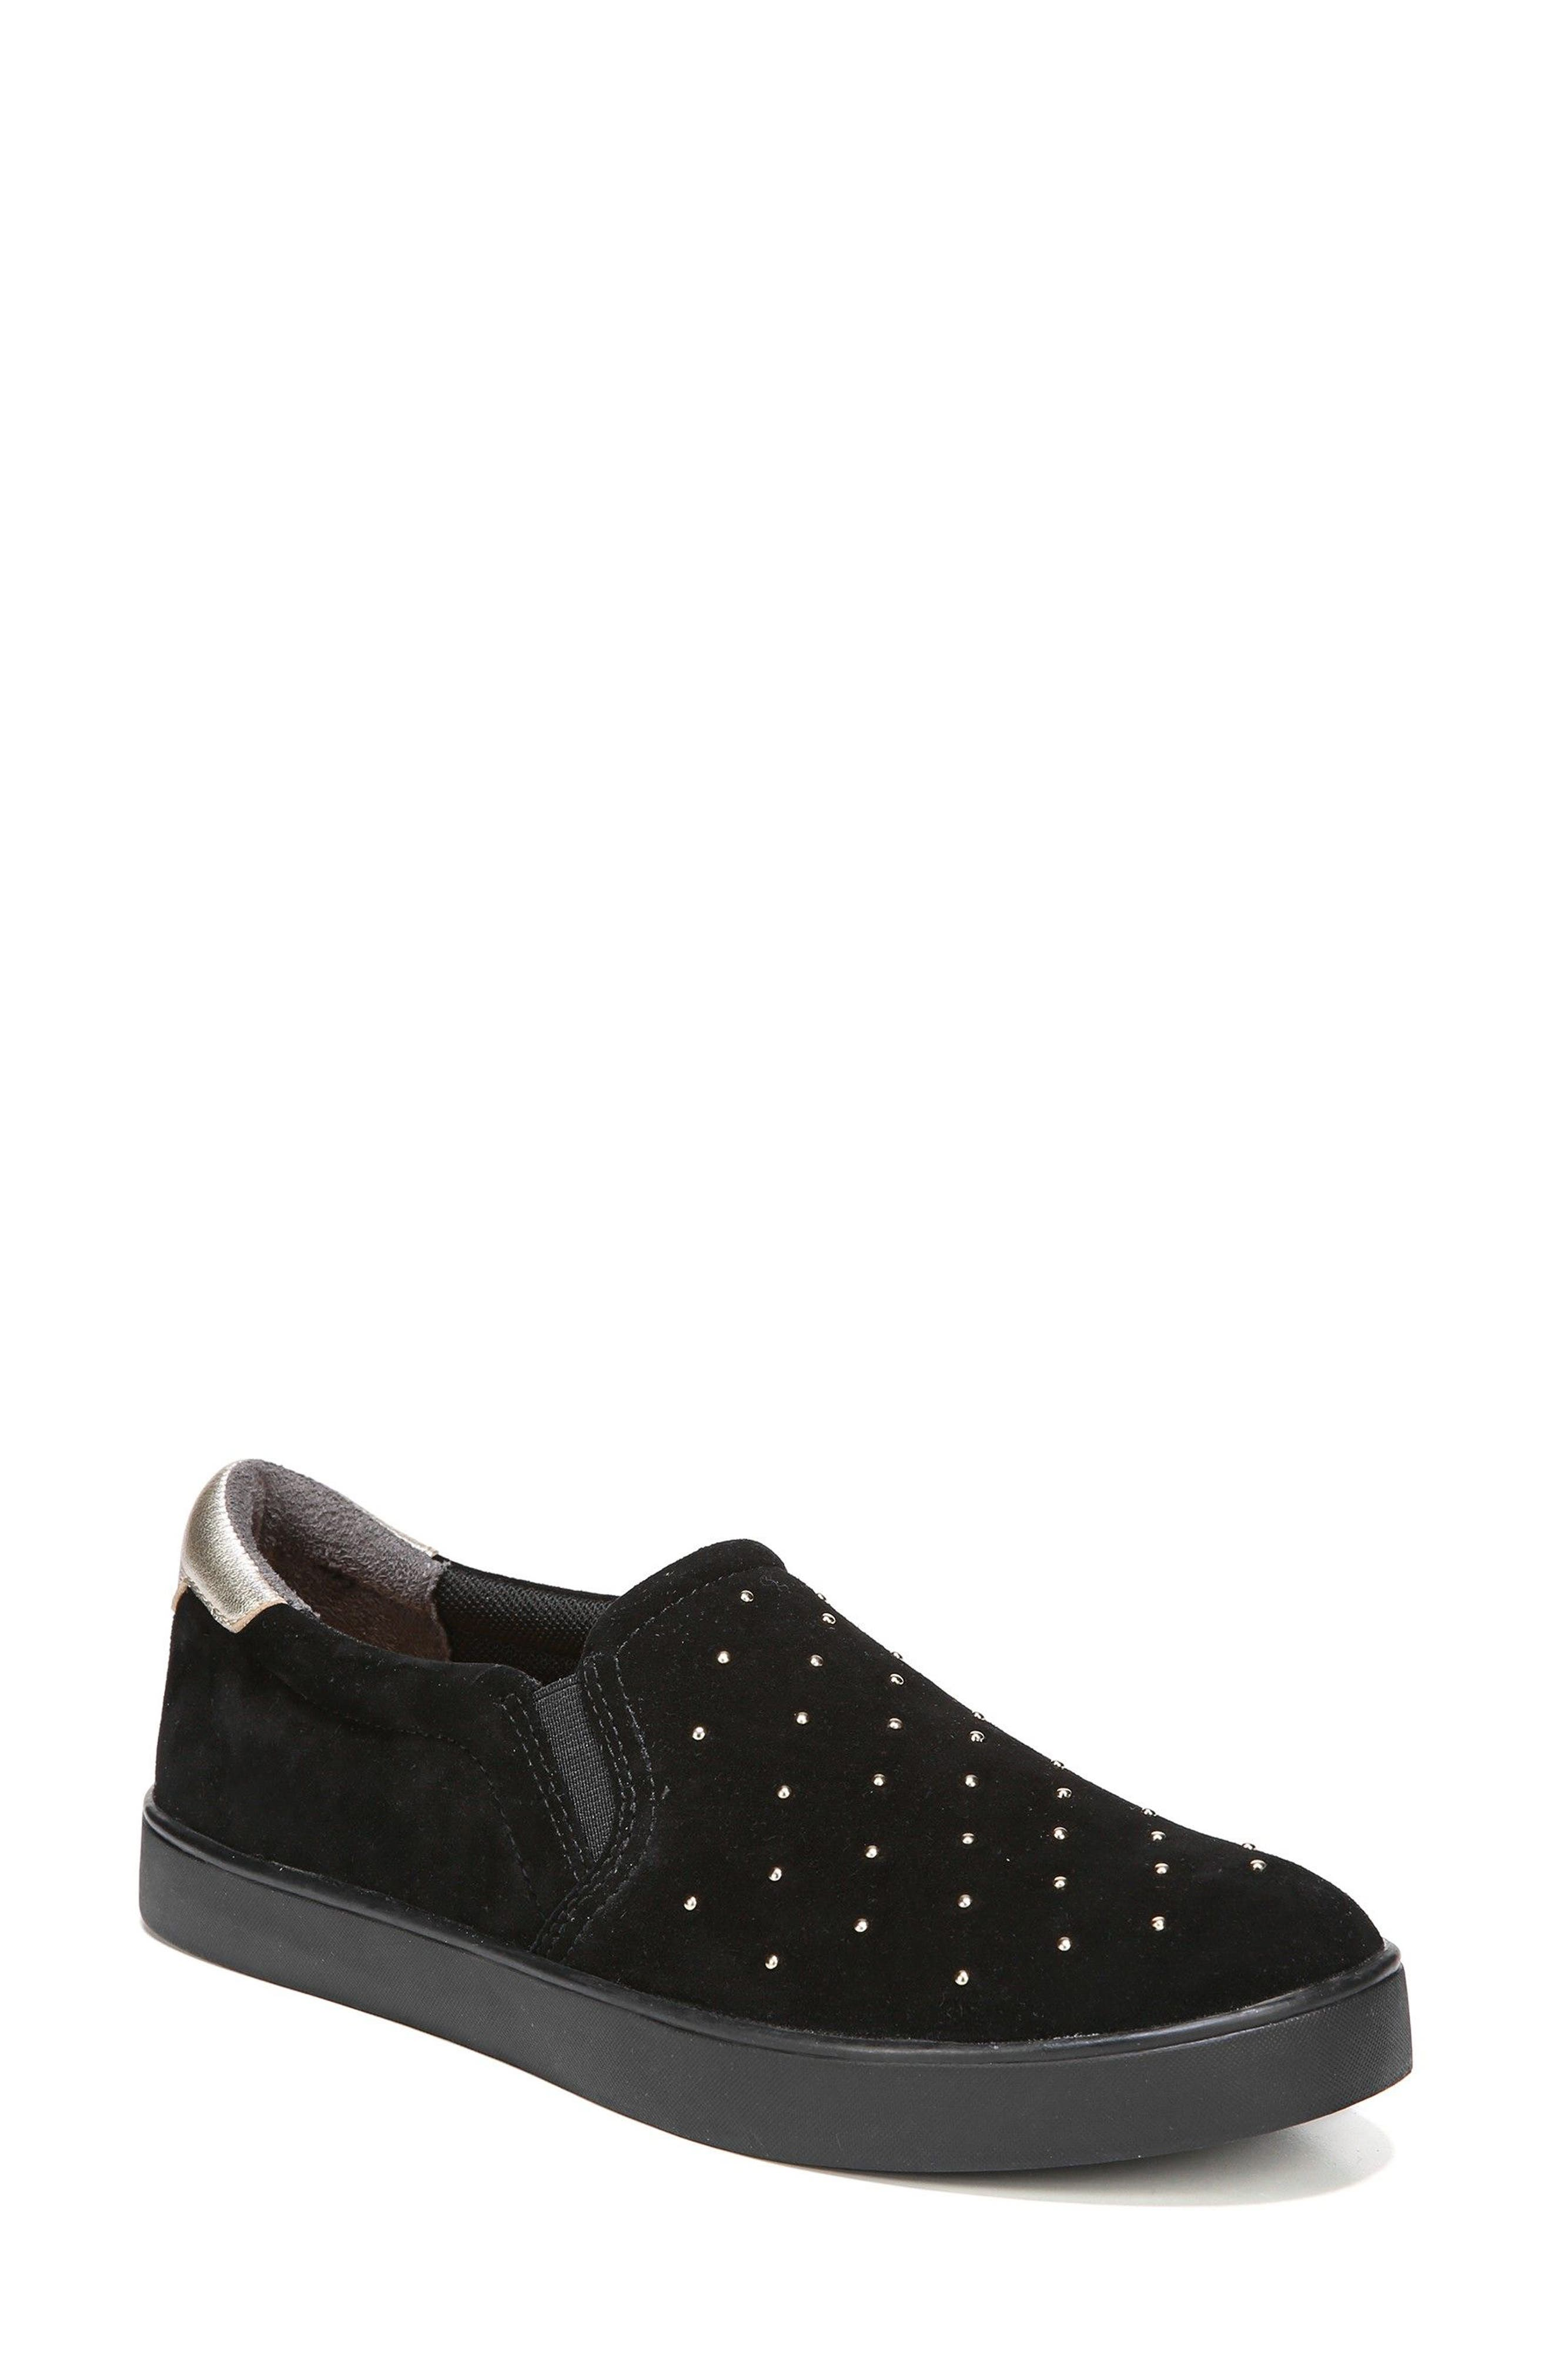 Original Collection 'Scout' Slip On Sneaker,                         Main,                         color, Black Suede